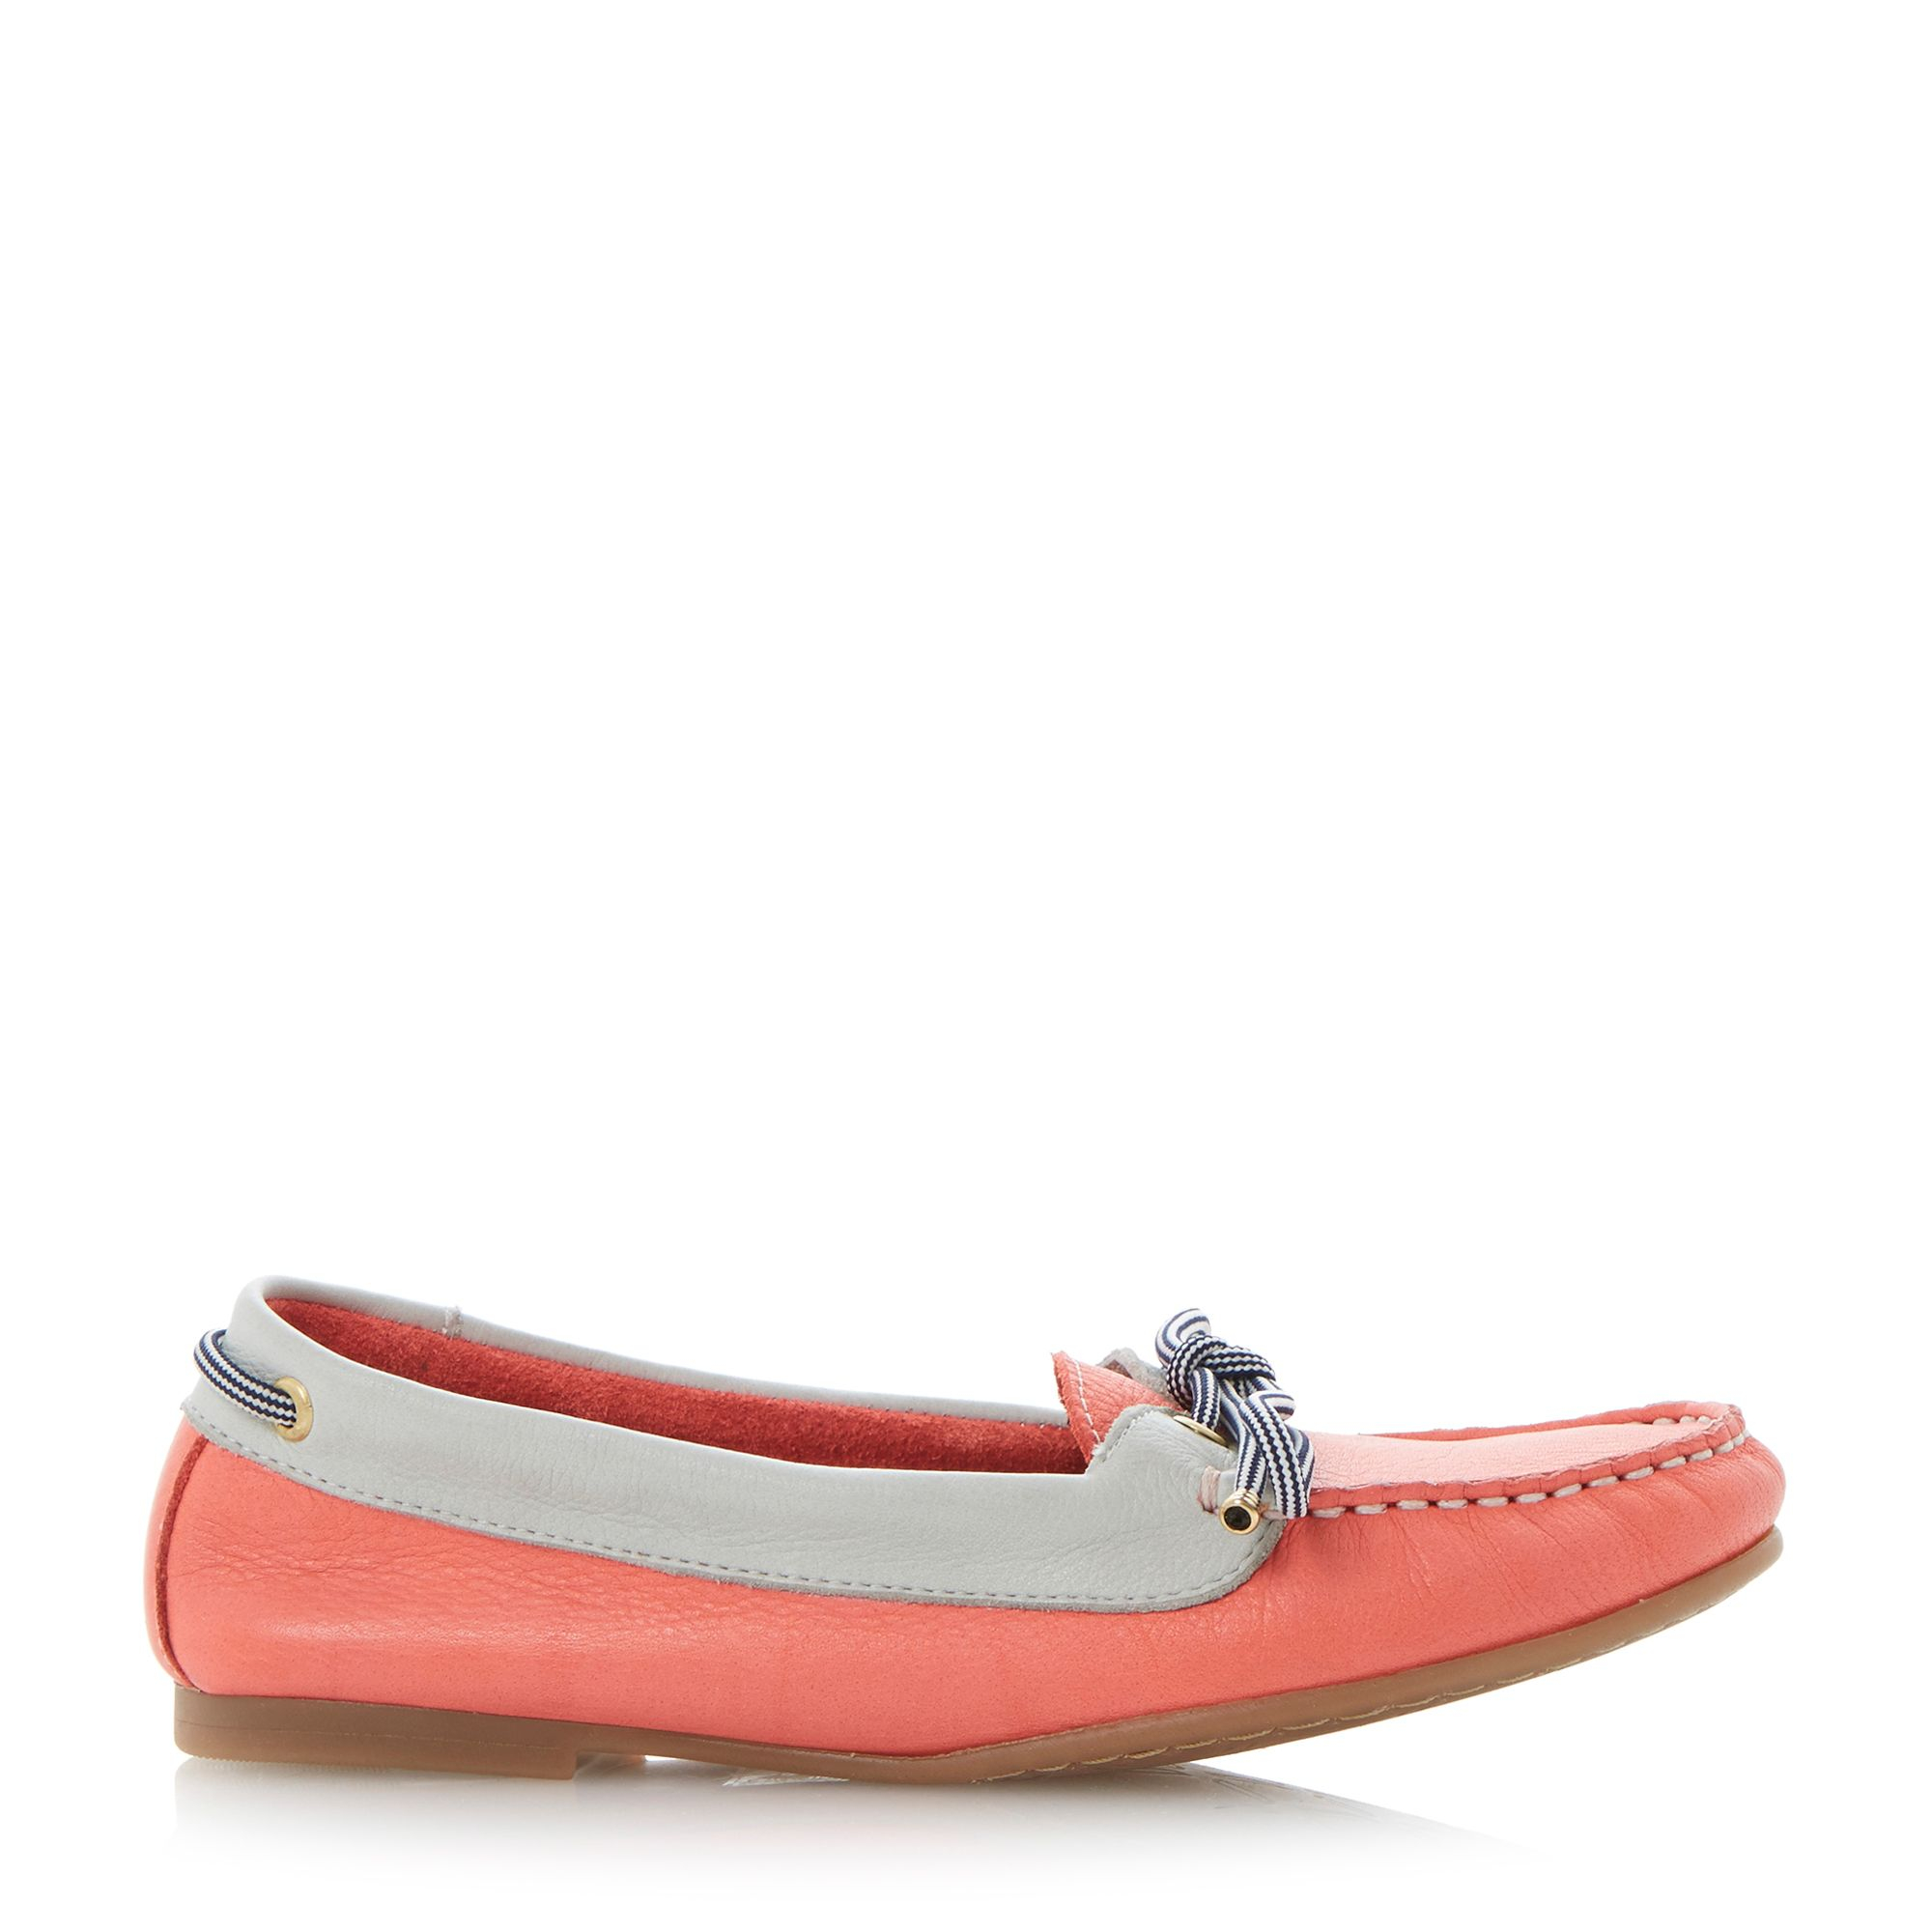 dune lautical suede toe flat deck shoes in pink